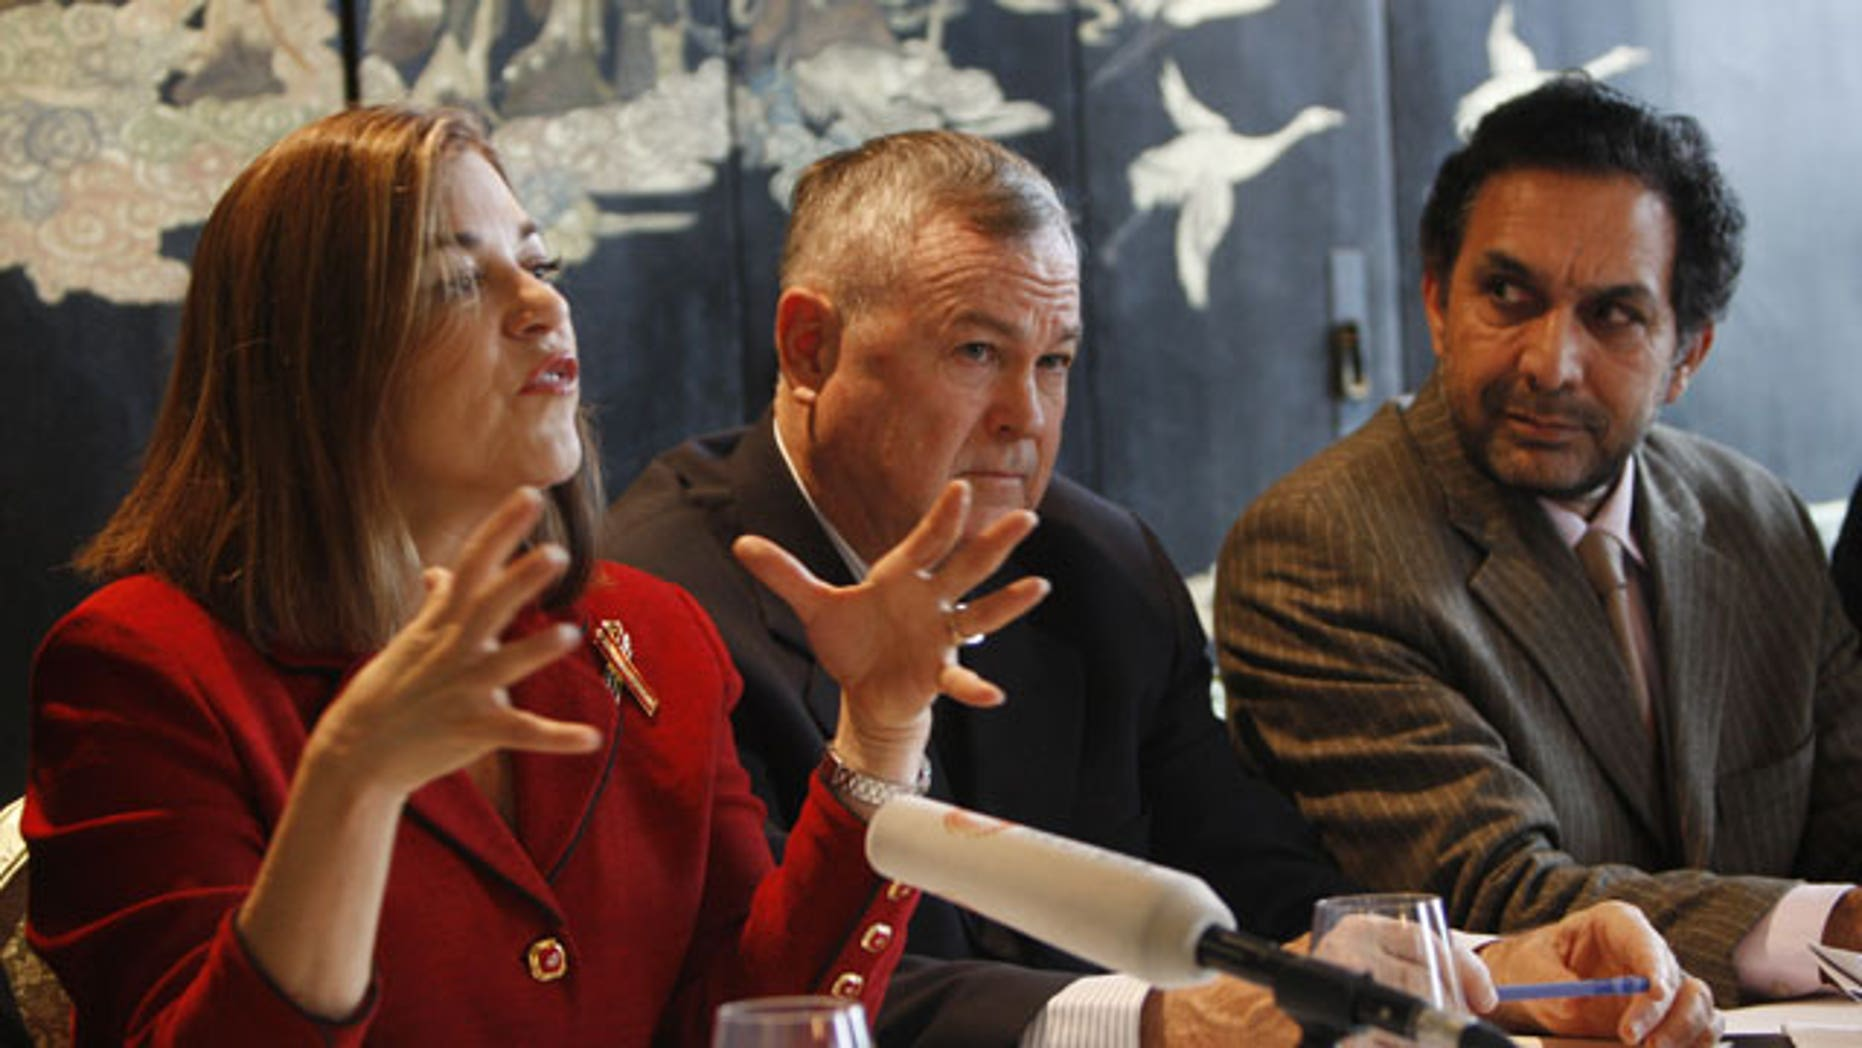 January 9, 2012: Rep Loretta Sanchez, Rep Dana Rohrabacher, Chair of the House Foreign Affairs Subcommittee on Oversight and Ahmad Zia Massoud, Chairman of the National Front, from left, attend a press conference after a meeting of members of U.S. congress with the Northern Alliance Leaders on Afghan Strategy in Berlin.